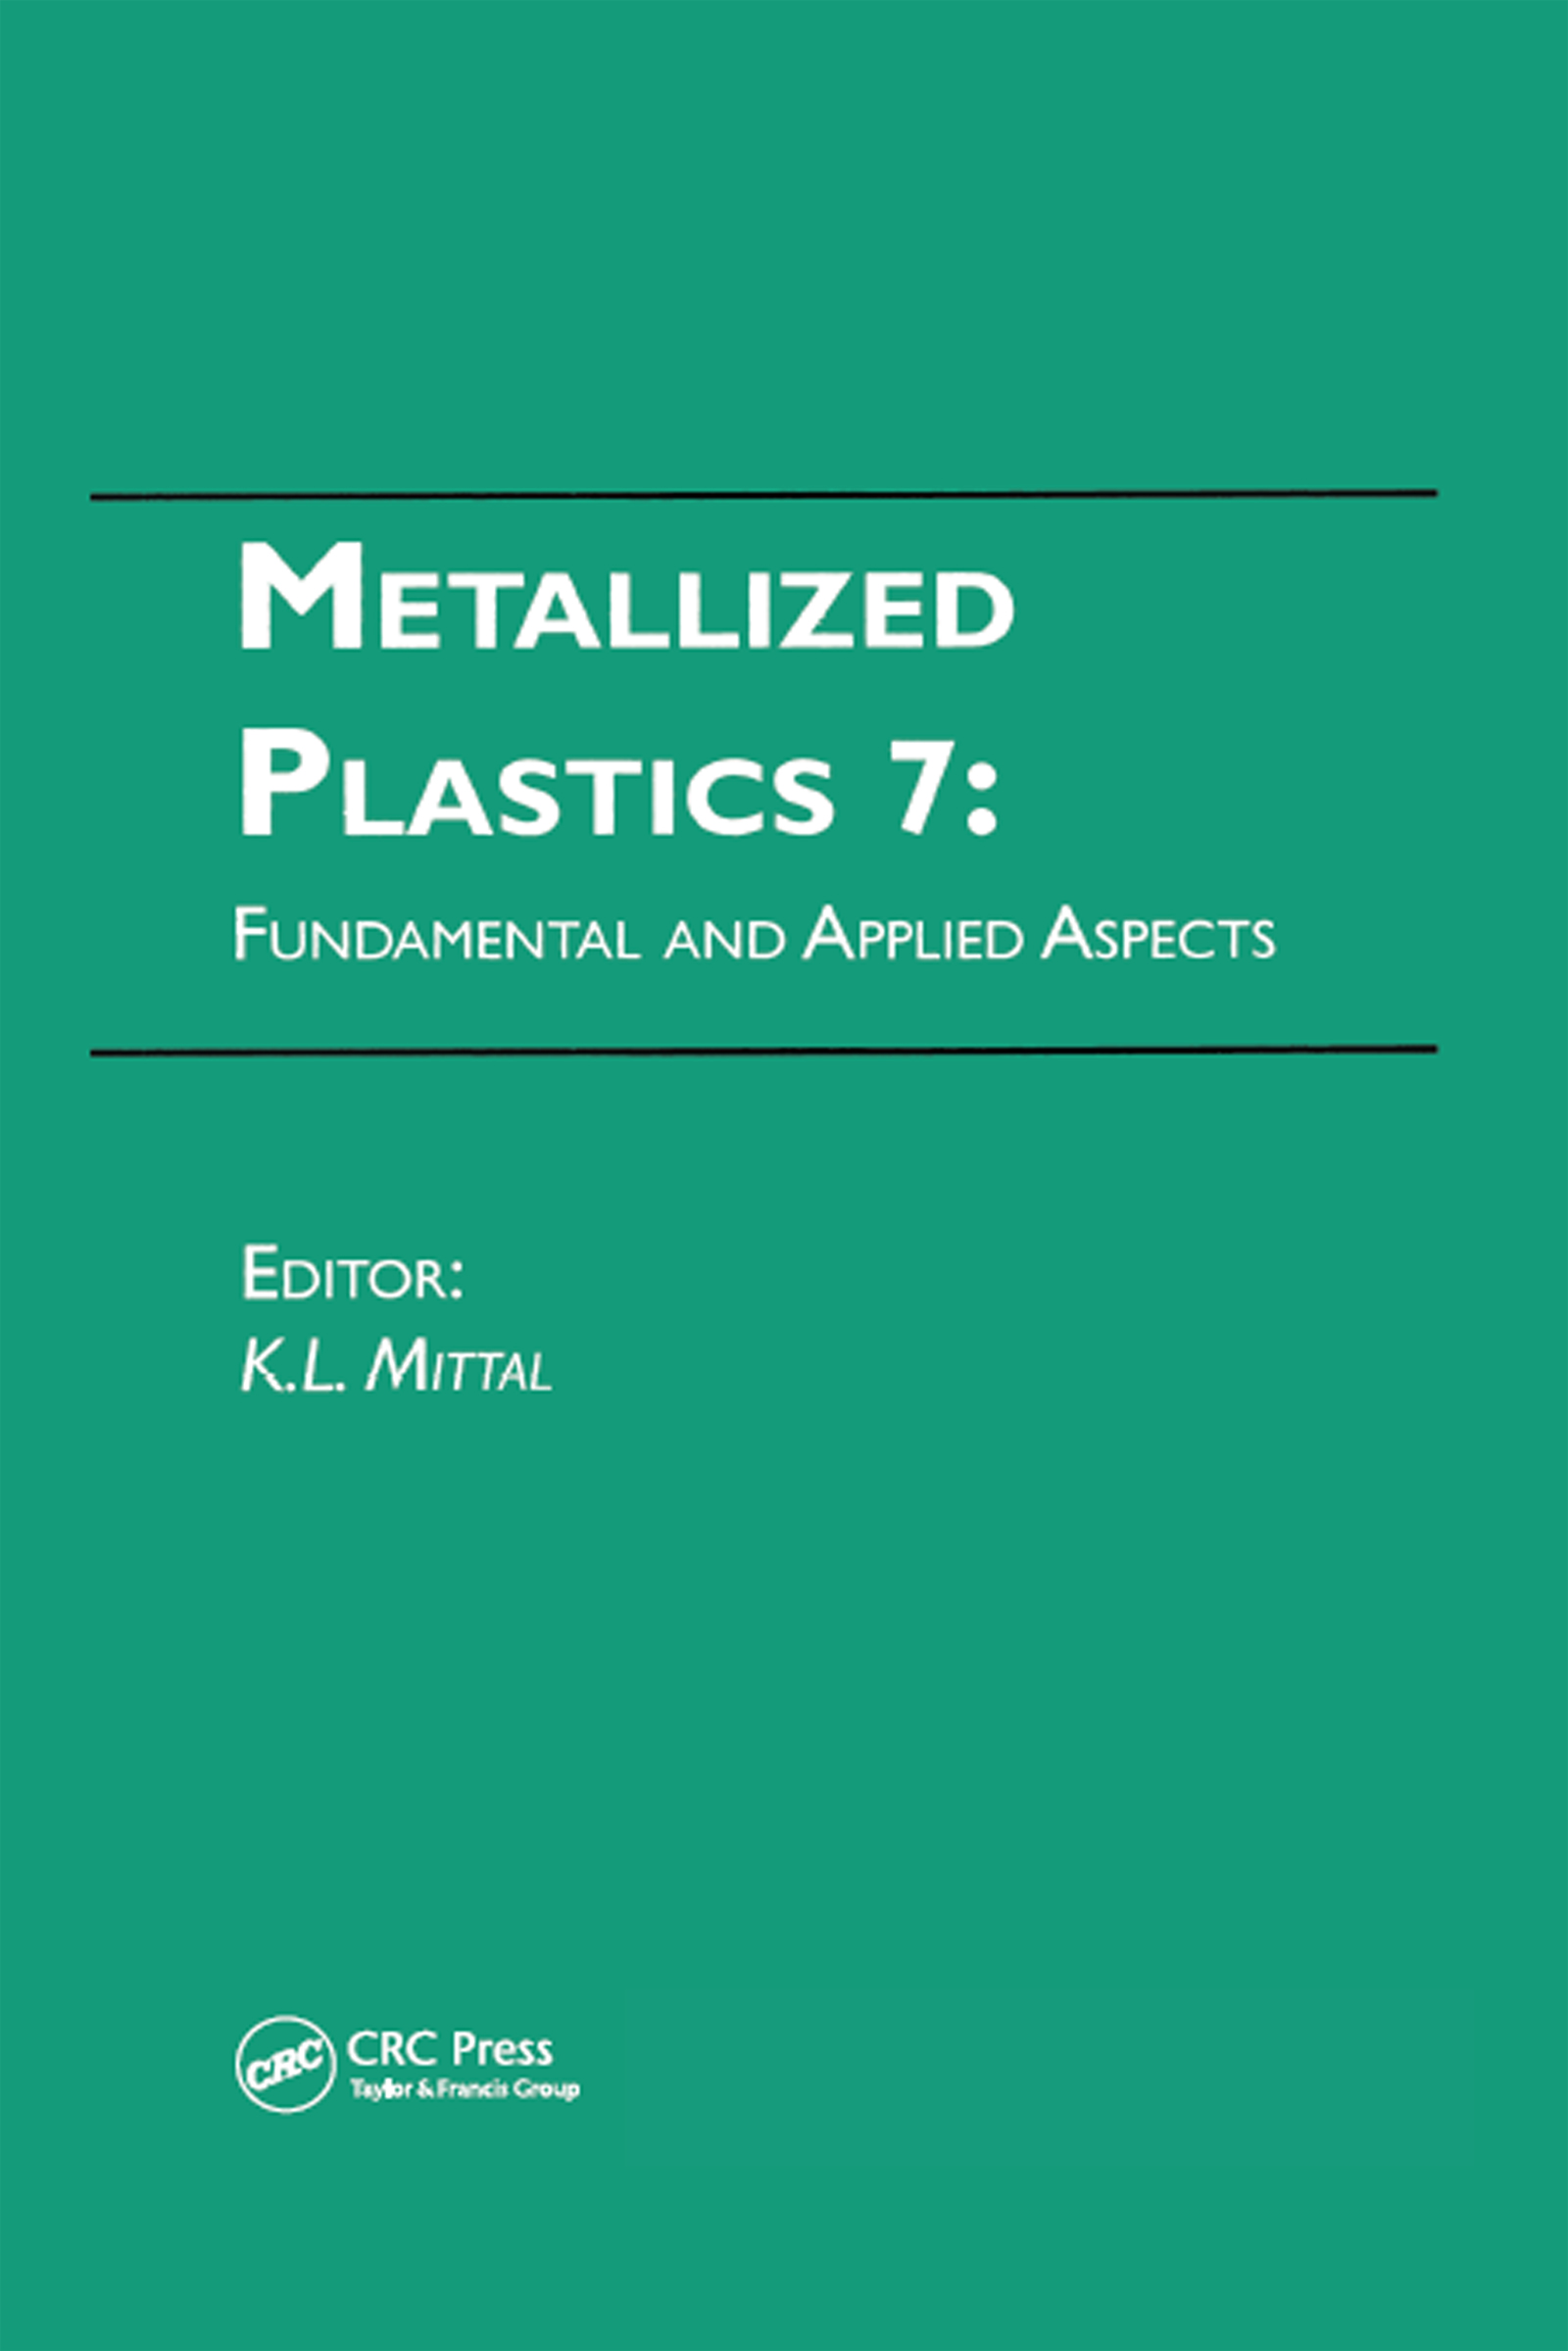 Metallization of polymers by plasma pretreatment followed by an electroplating process